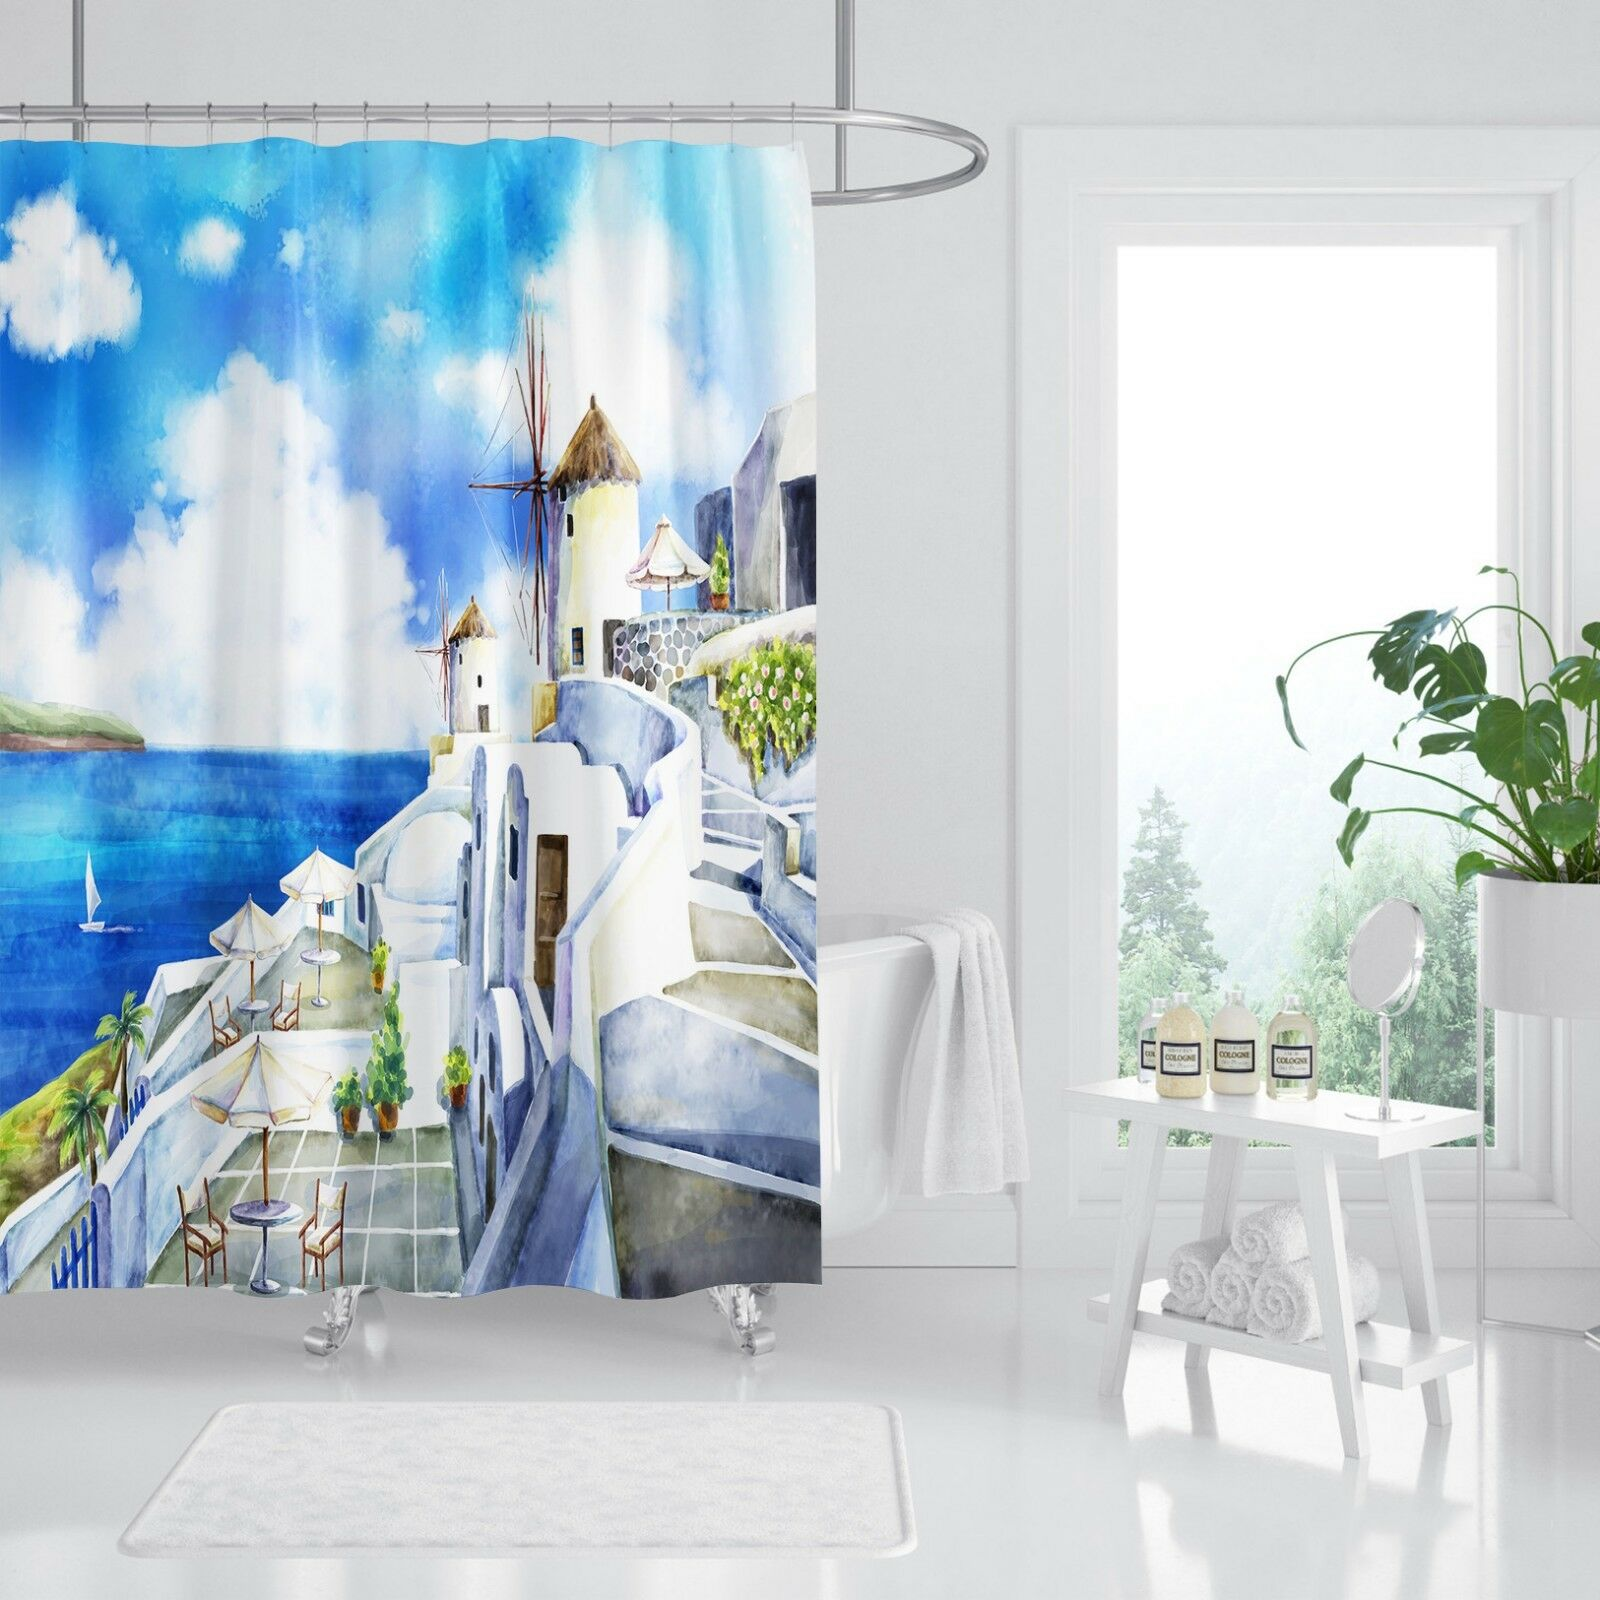 3D Castle Blau Sea 5Shower Curtain Waterproof Fiber Bathroom Home Windows Toilet